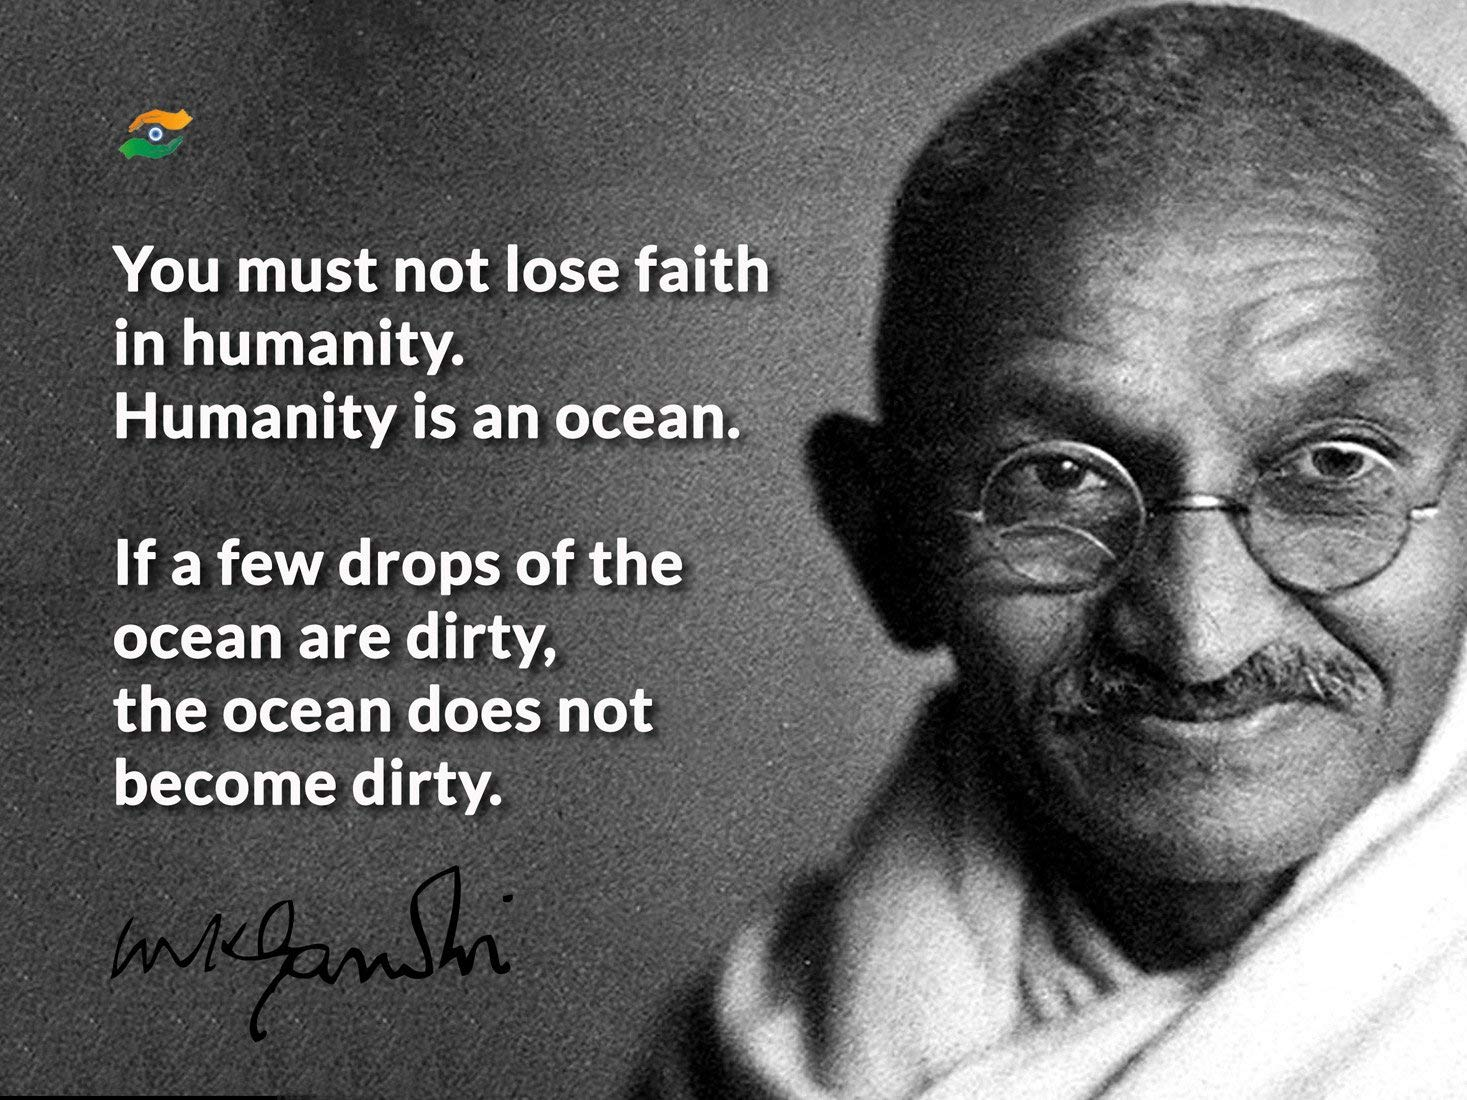 tallenge humanity is an ocean mahatma gandhi quote medium poster